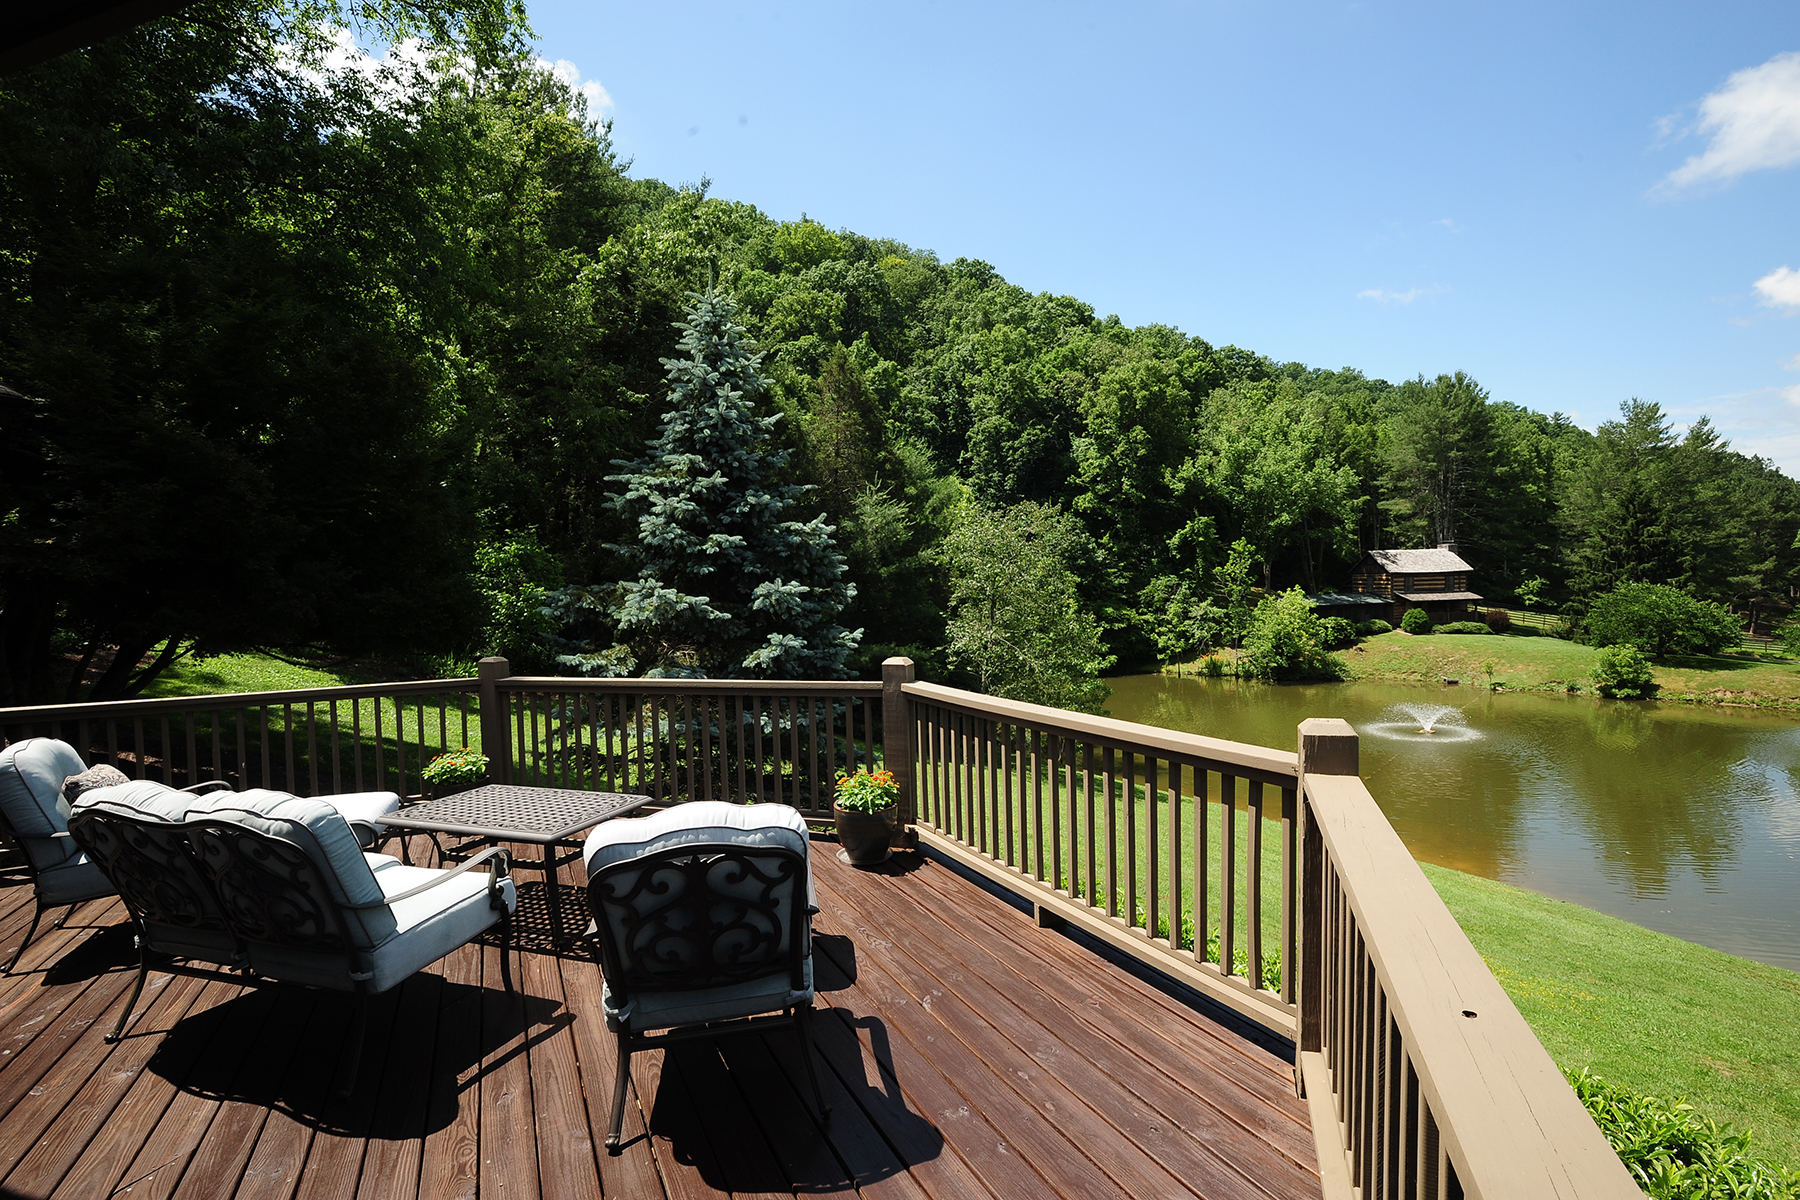 Additional photo for property listing at 409 ACRE ESTATE WITH 4 HOUSES IN BRISTOL, TN 485  Gentry Ln,  Bristol, Tennessee 37620 United States